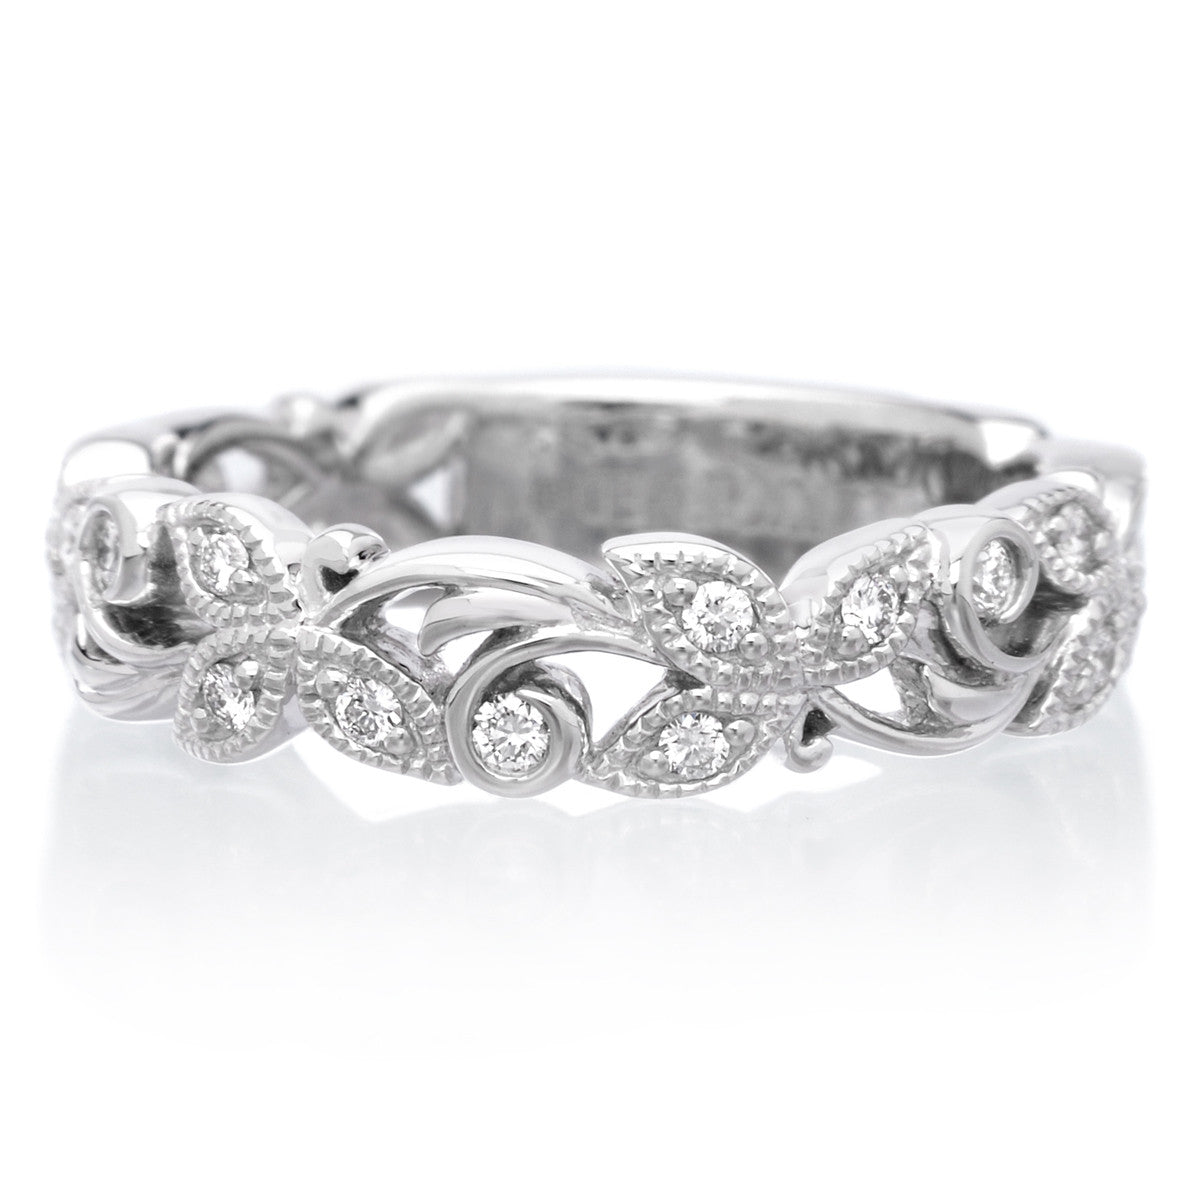 18K White Gold Diamond Anniversary Band